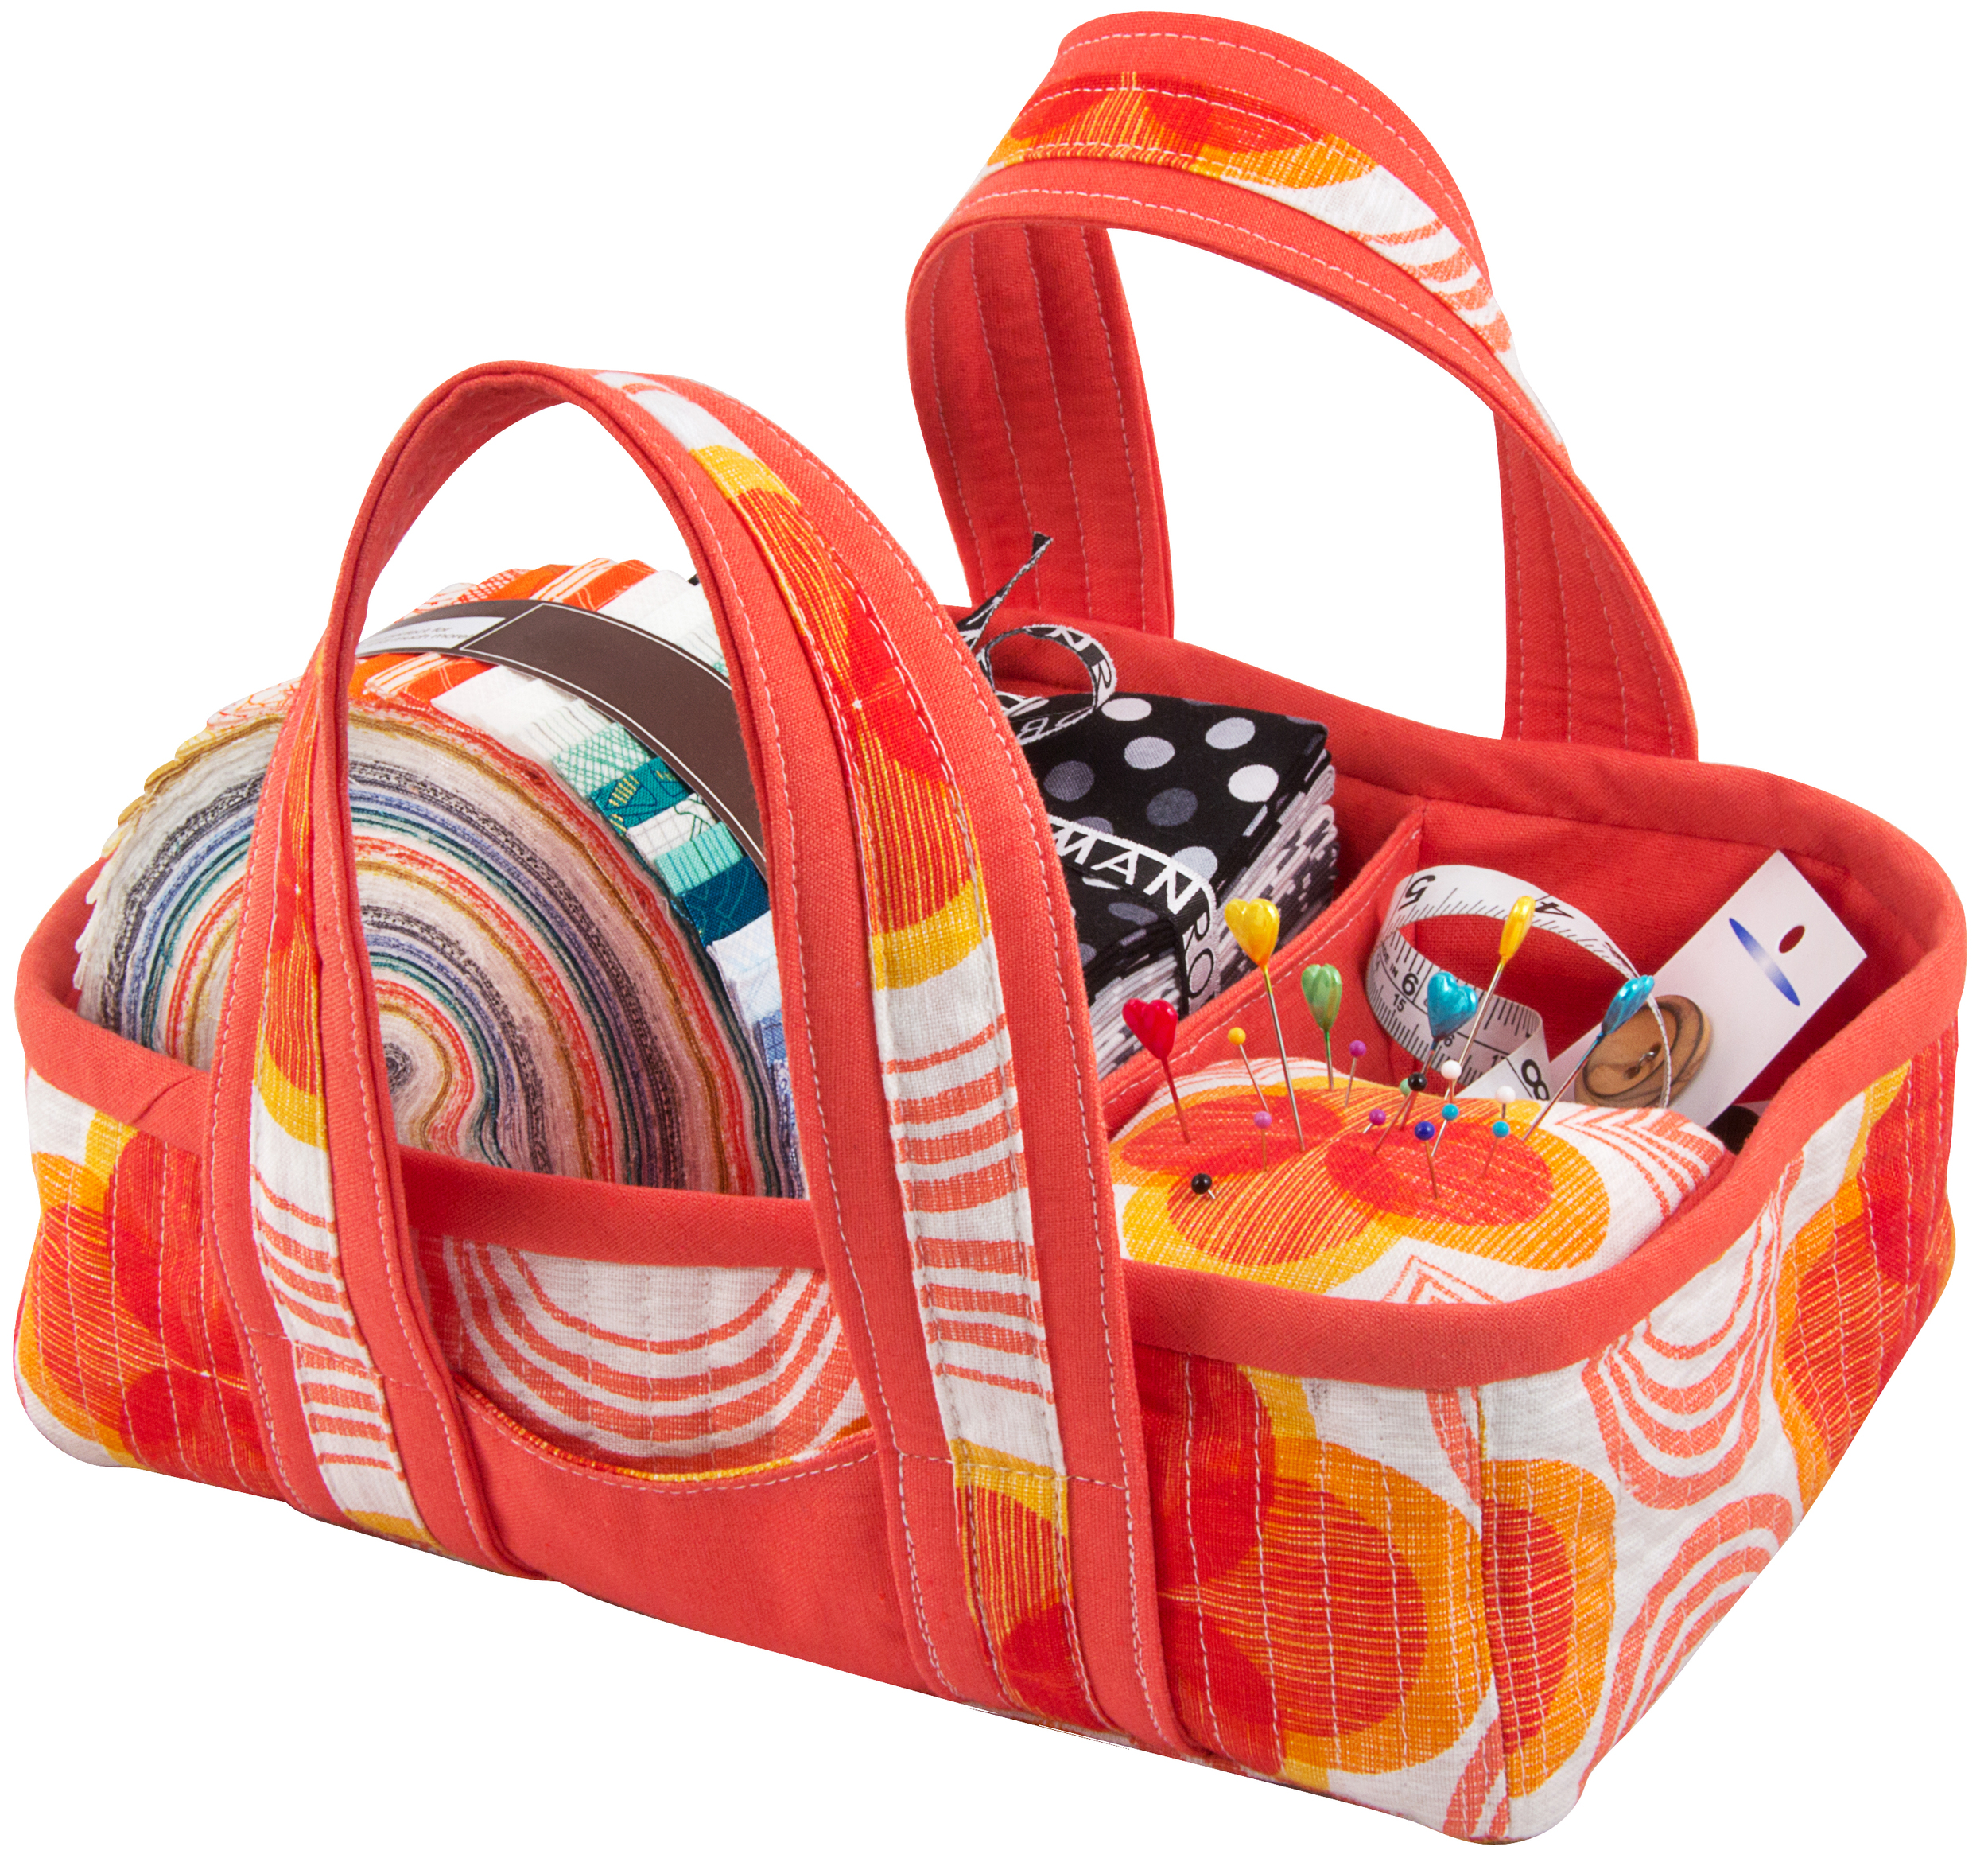 Sewing Basket.jpg